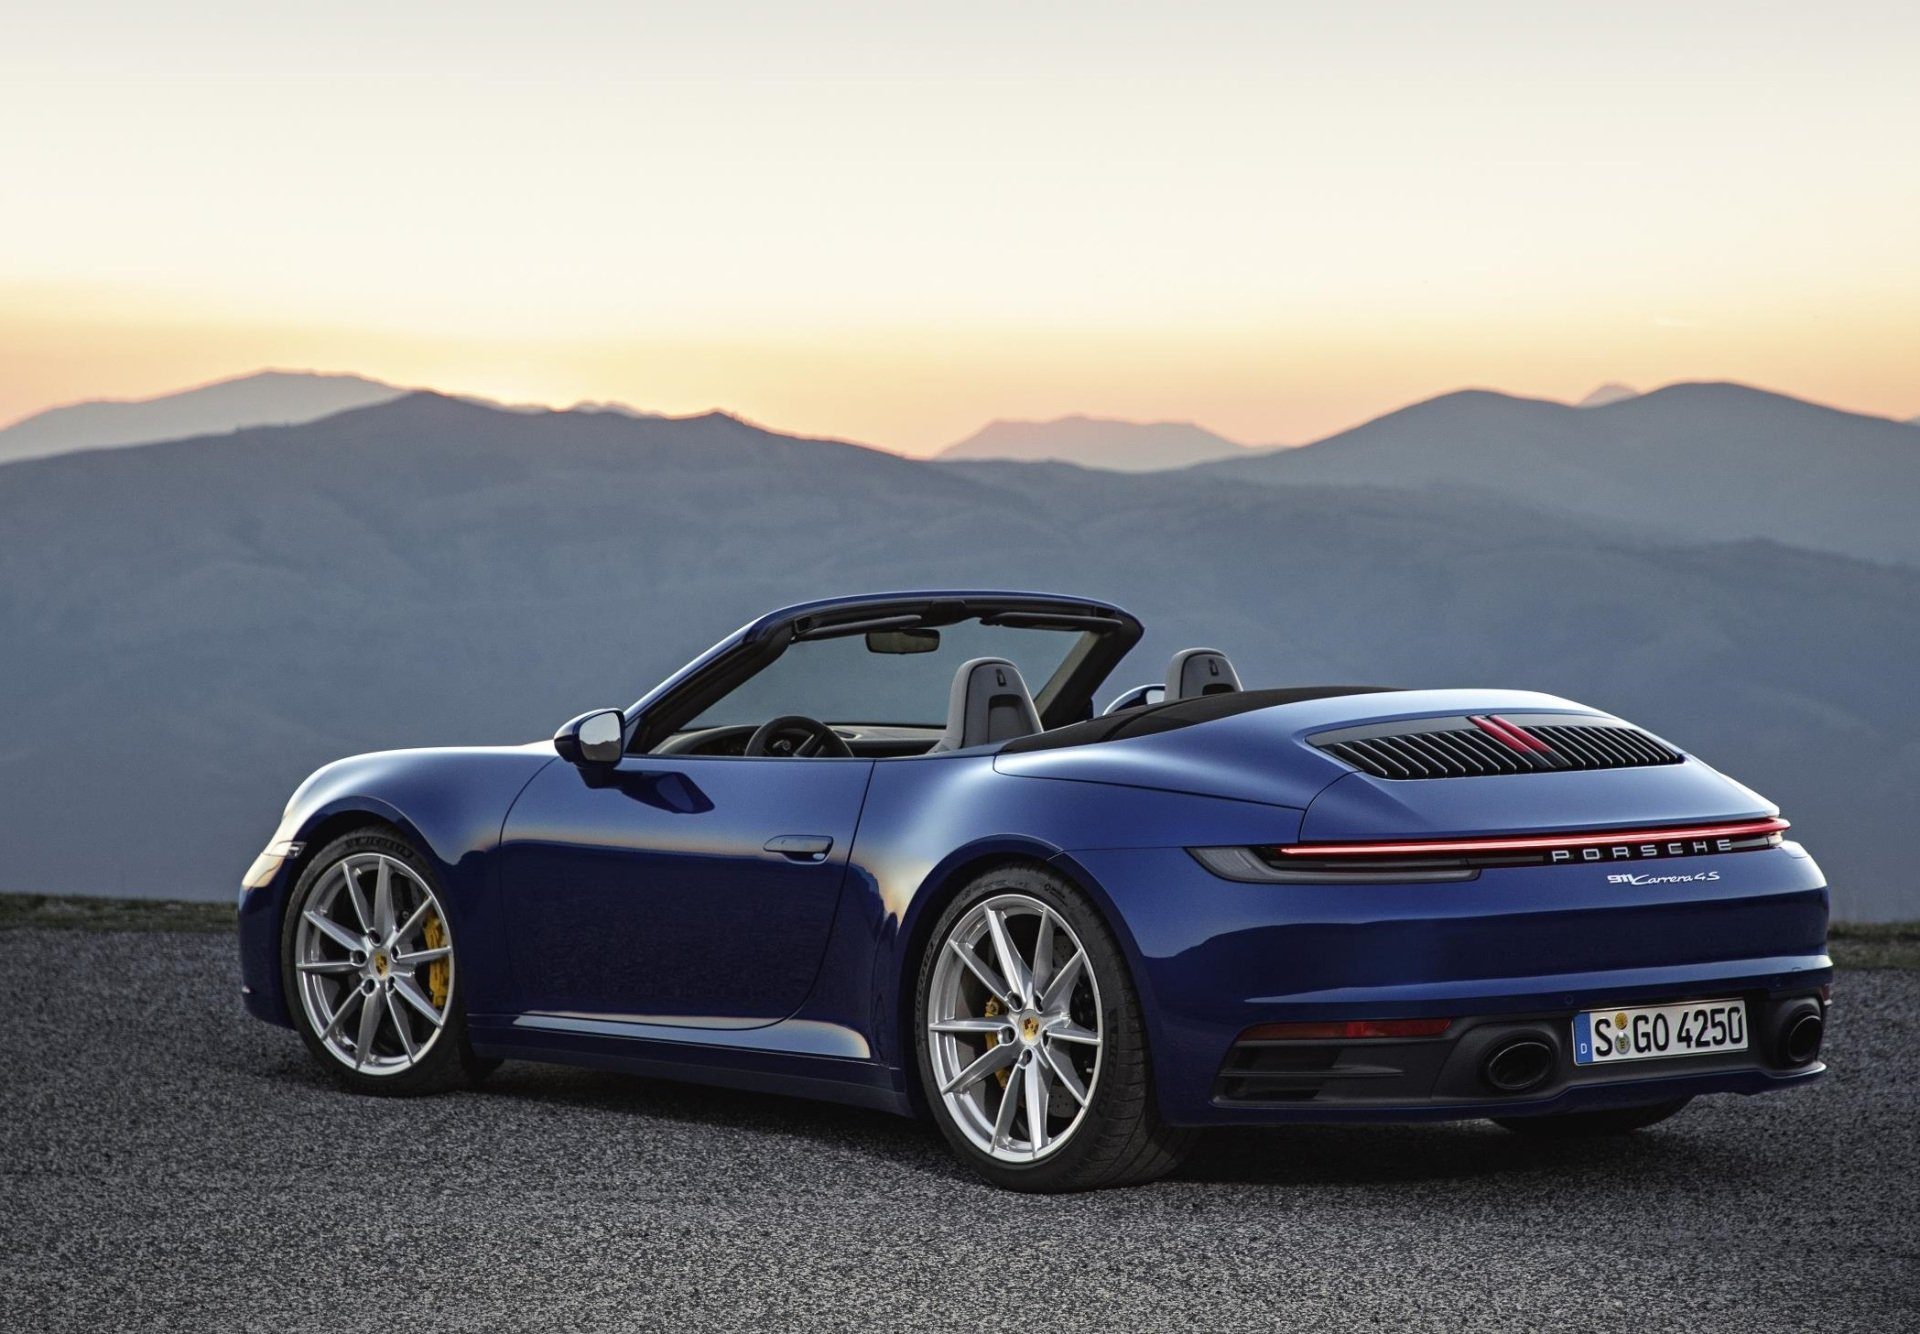 The 2020 Porsche 911 Cabriolet (Porsche N.A. Photo)